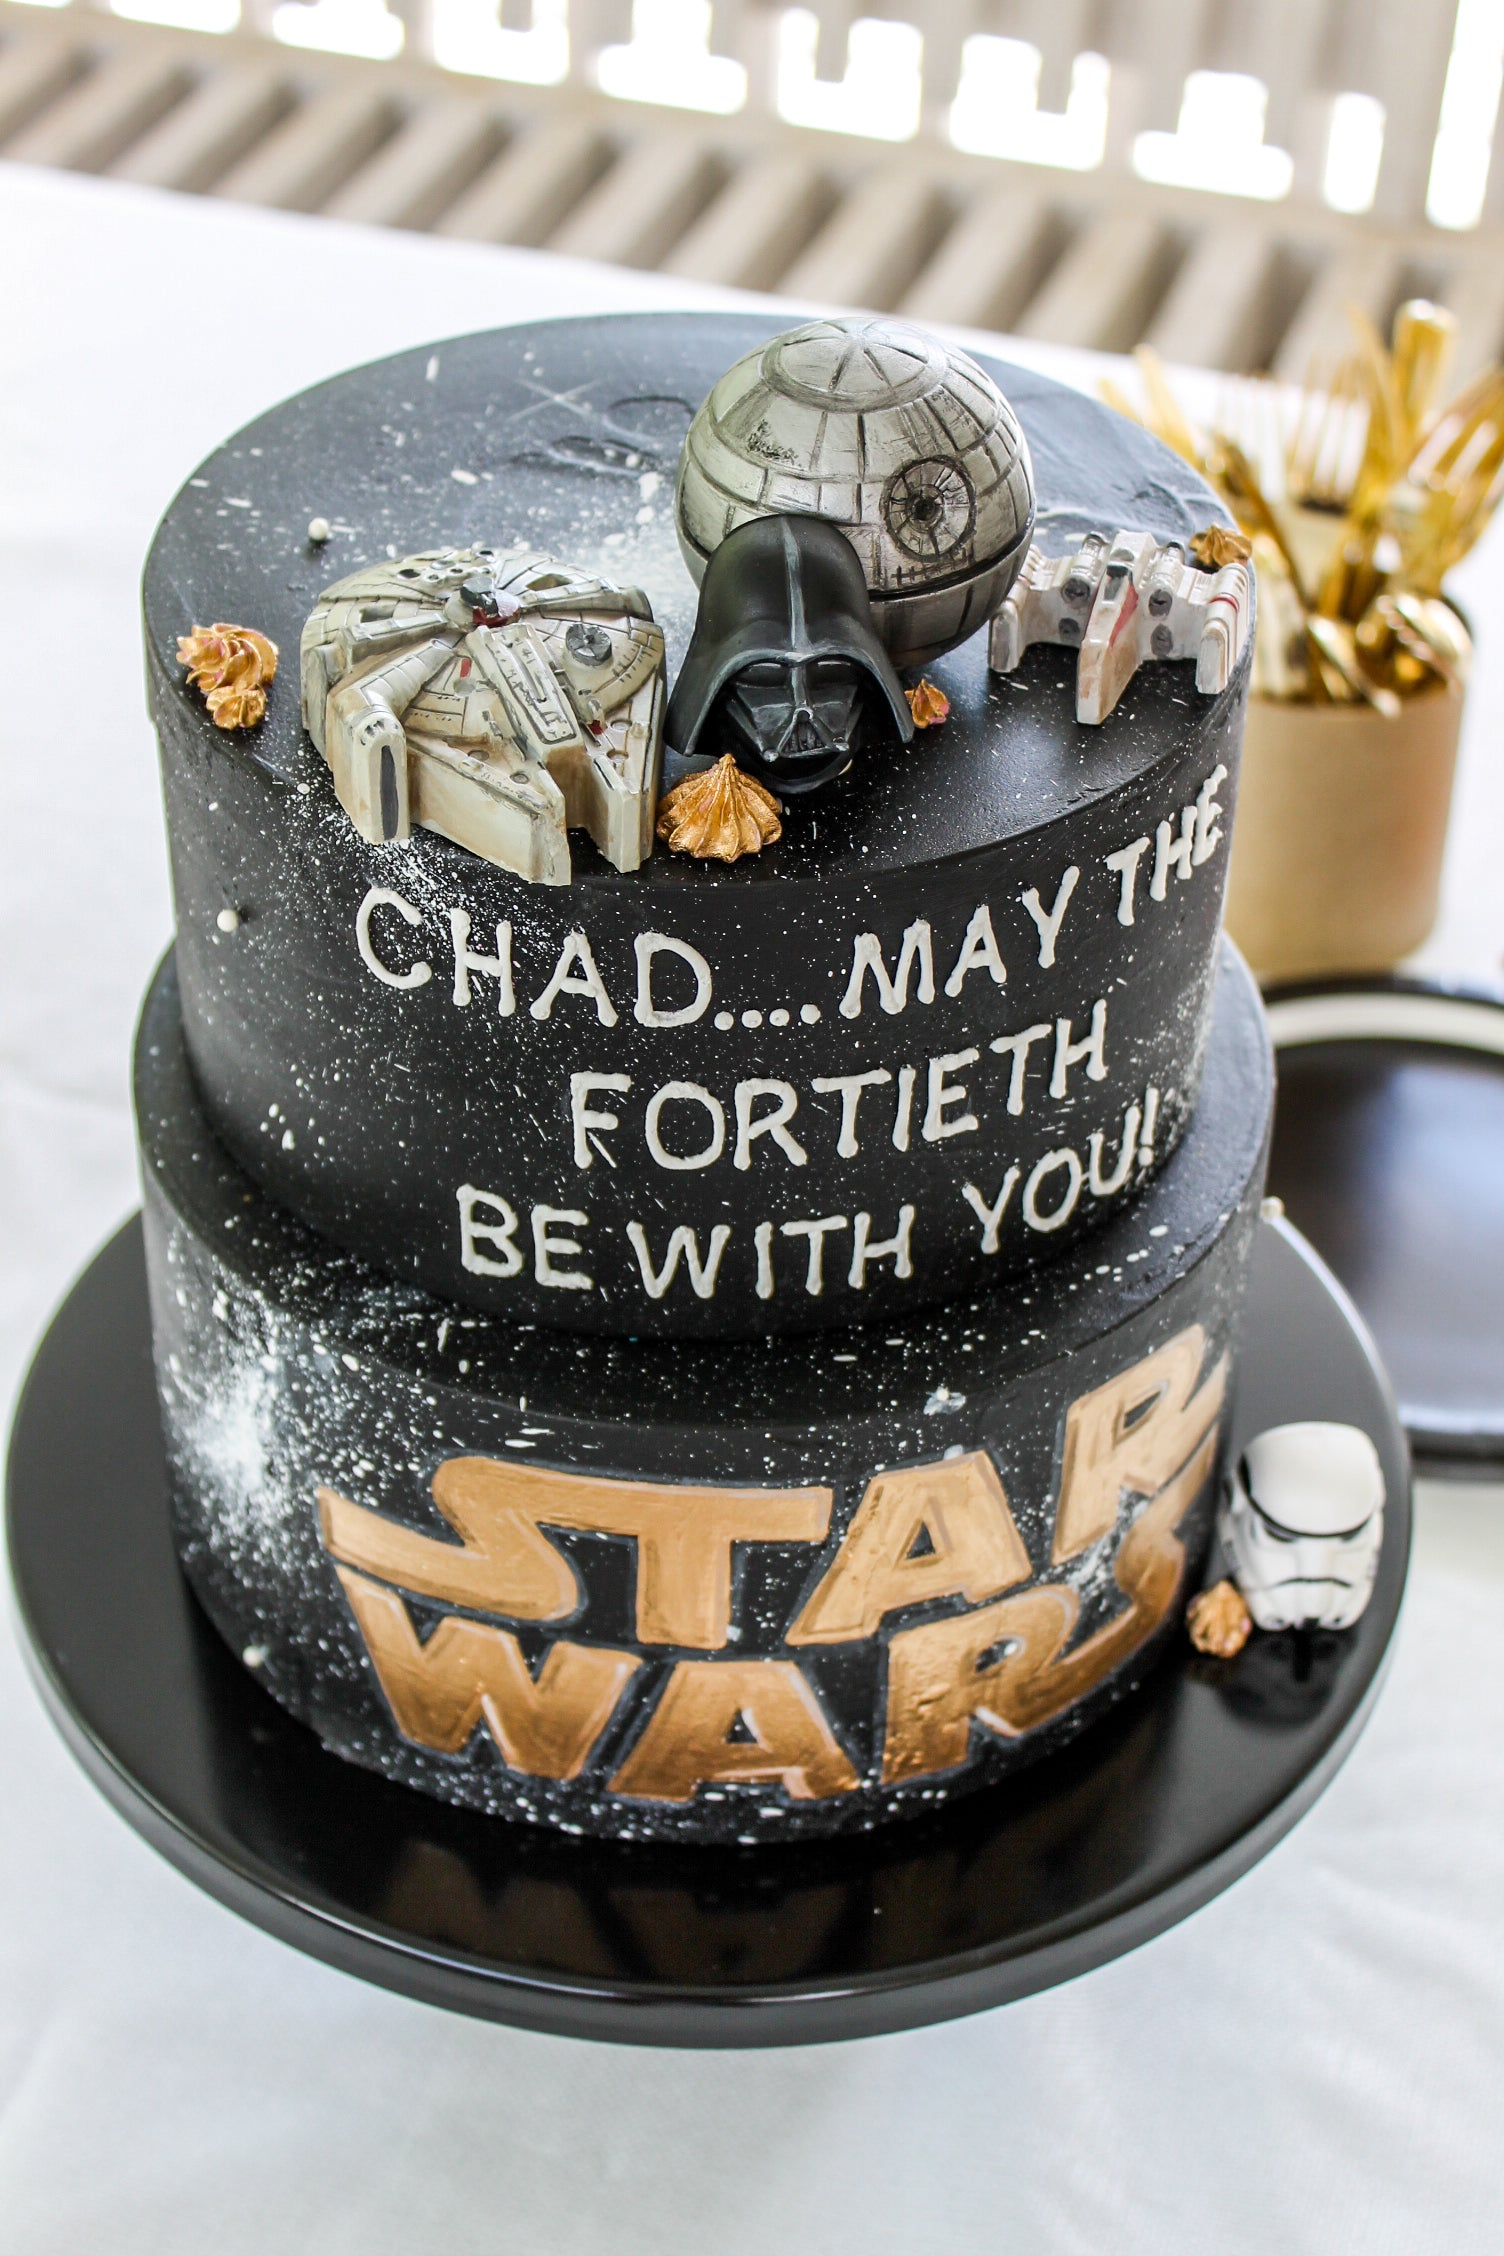 Pleasing Star Wars Cake Toppers Confection Deception Funny Birthday Cards Online Bapapcheapnameinfo